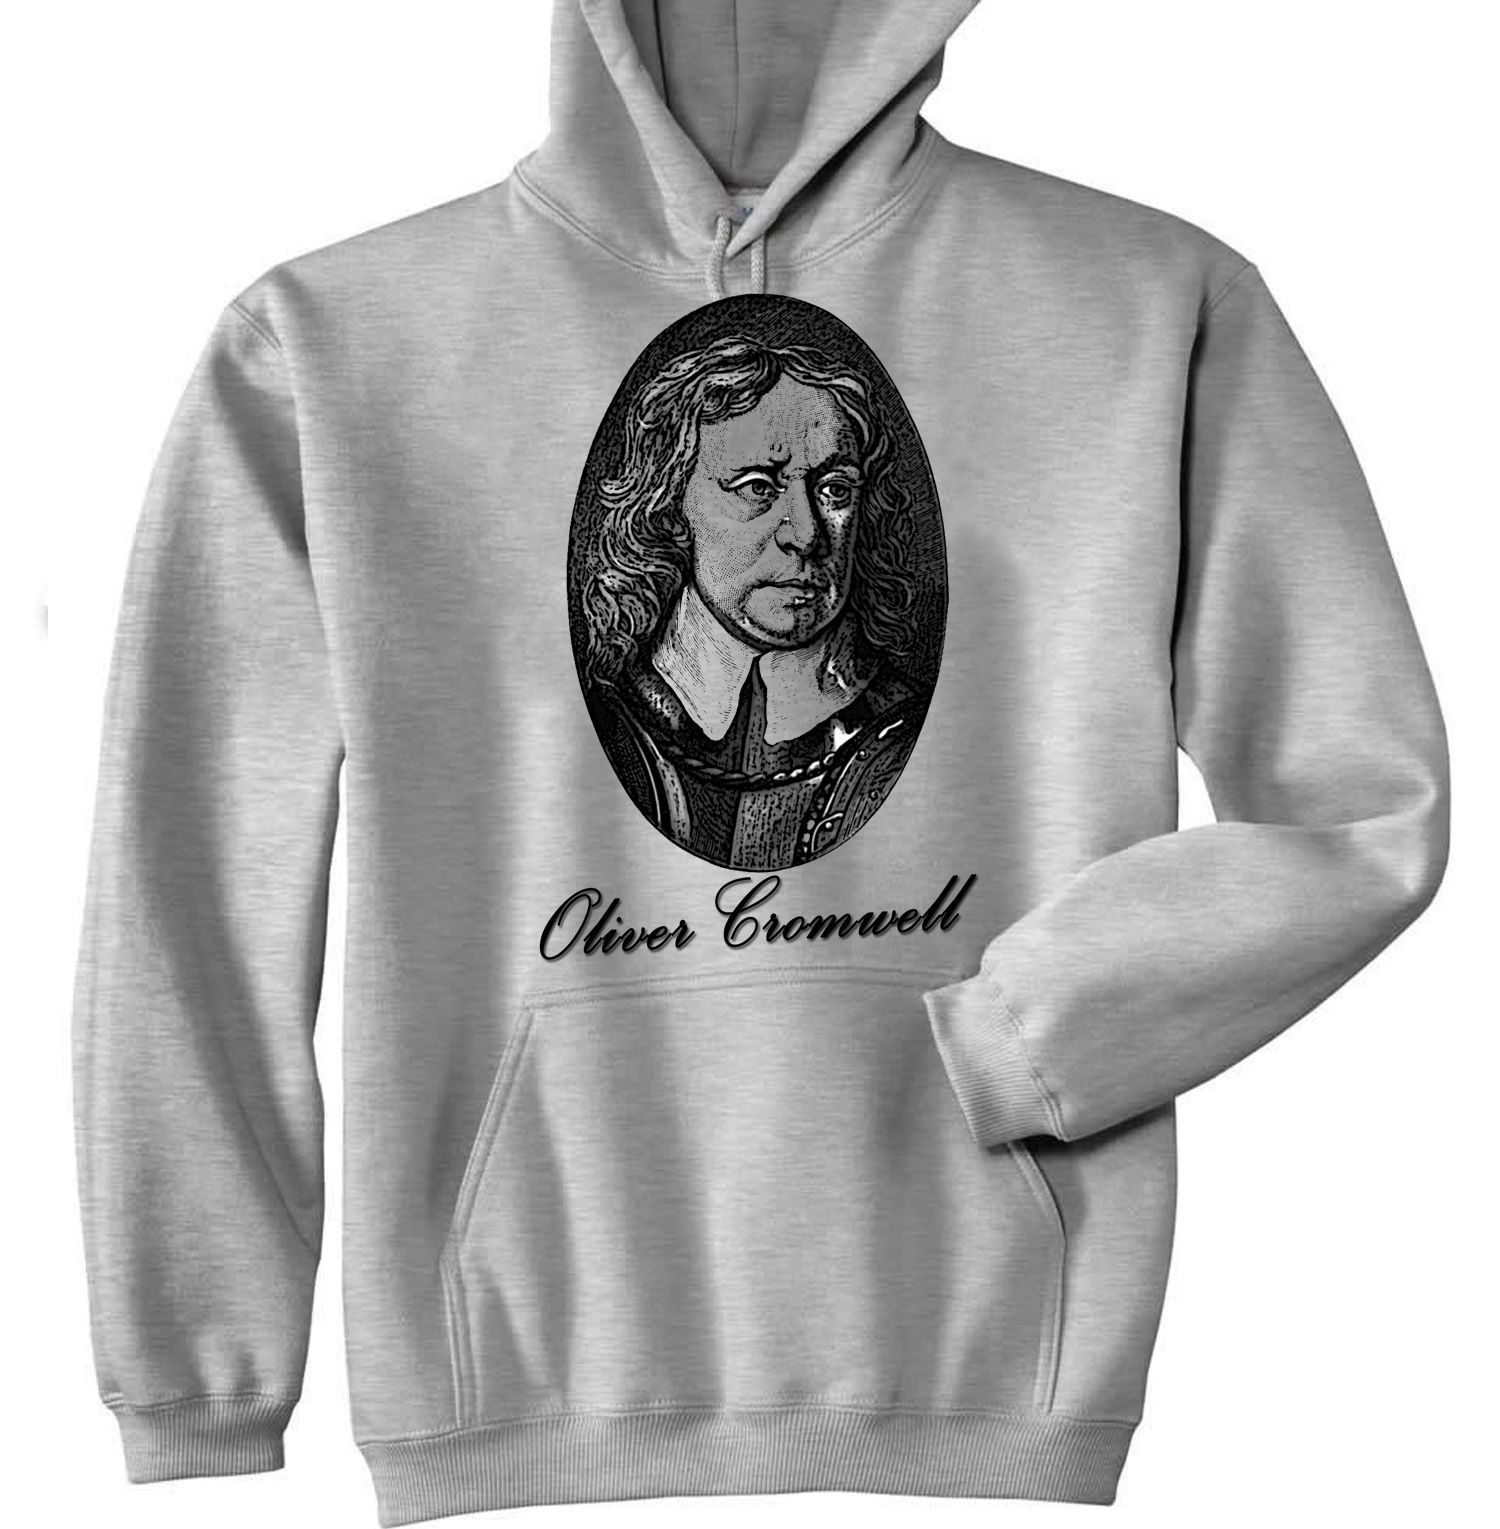 Primary image for OLIVER CROMWELL - NEW COTTON GREY HOODIE - ALL SIZES IN STOCK